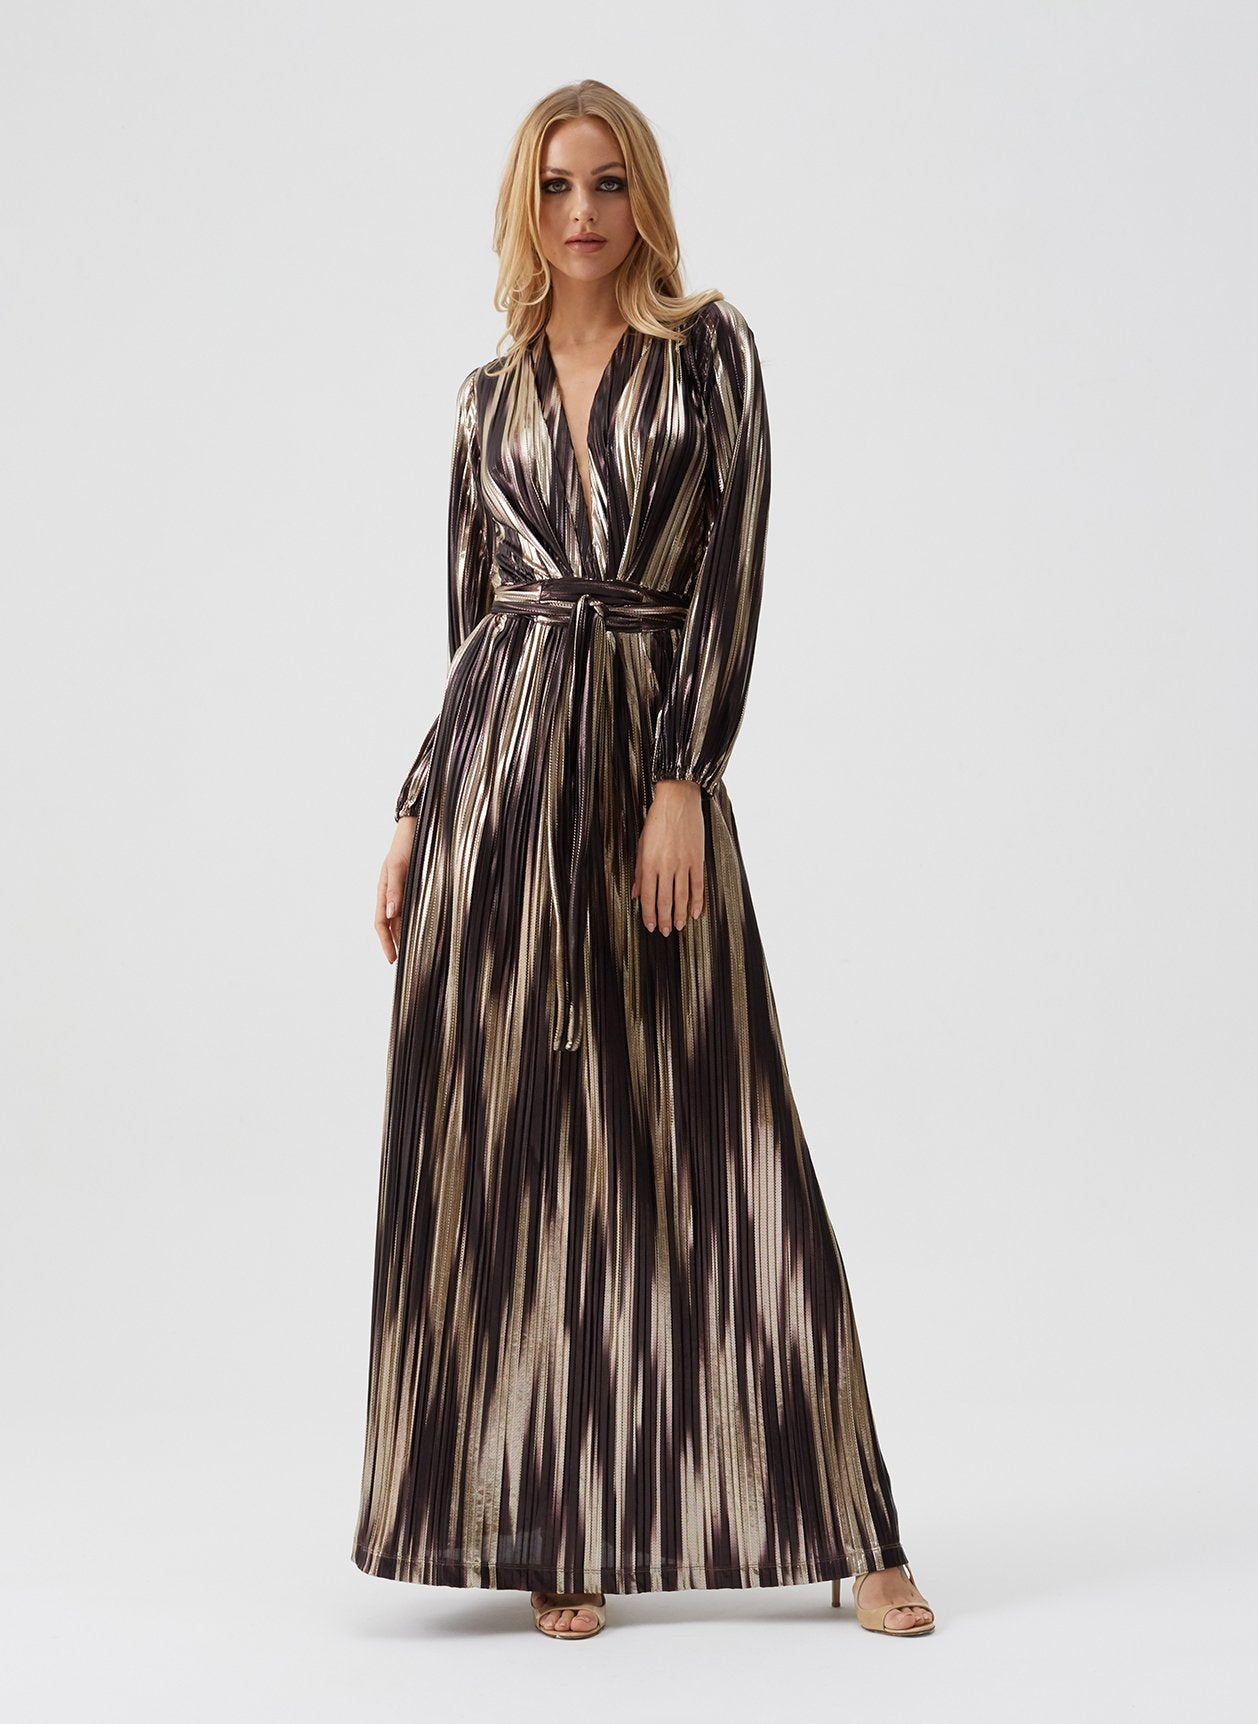 Maya Caramel Stripe Maxi Dress